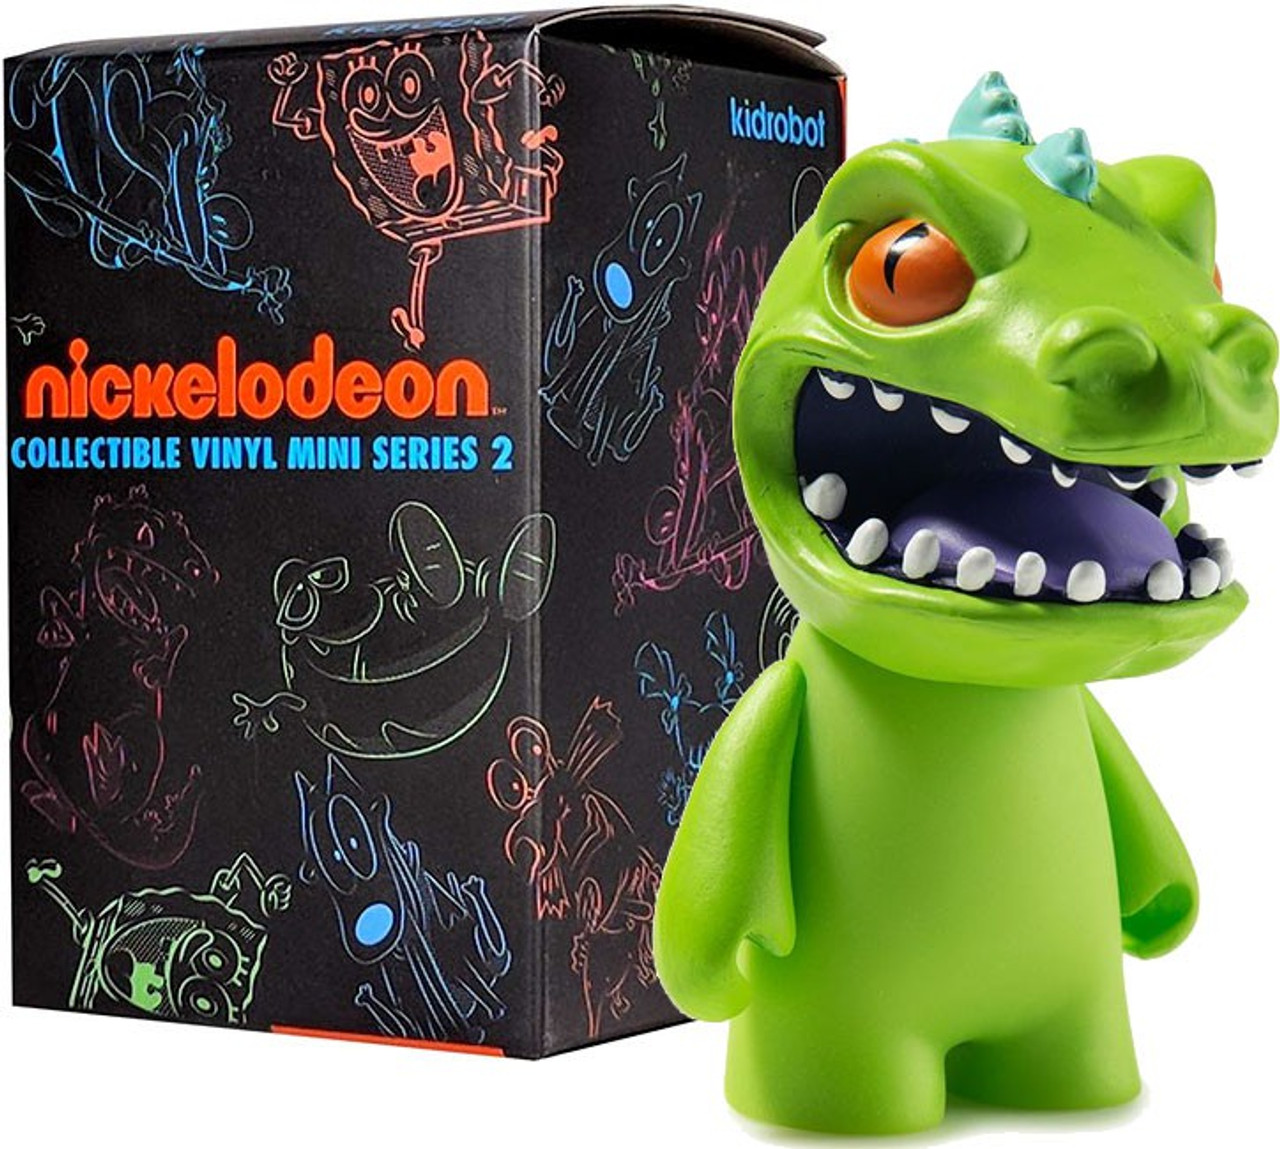 New Angelica kidrobot Nickelodeon Nick 90/'s Series 2 Vinyl Mini Figures